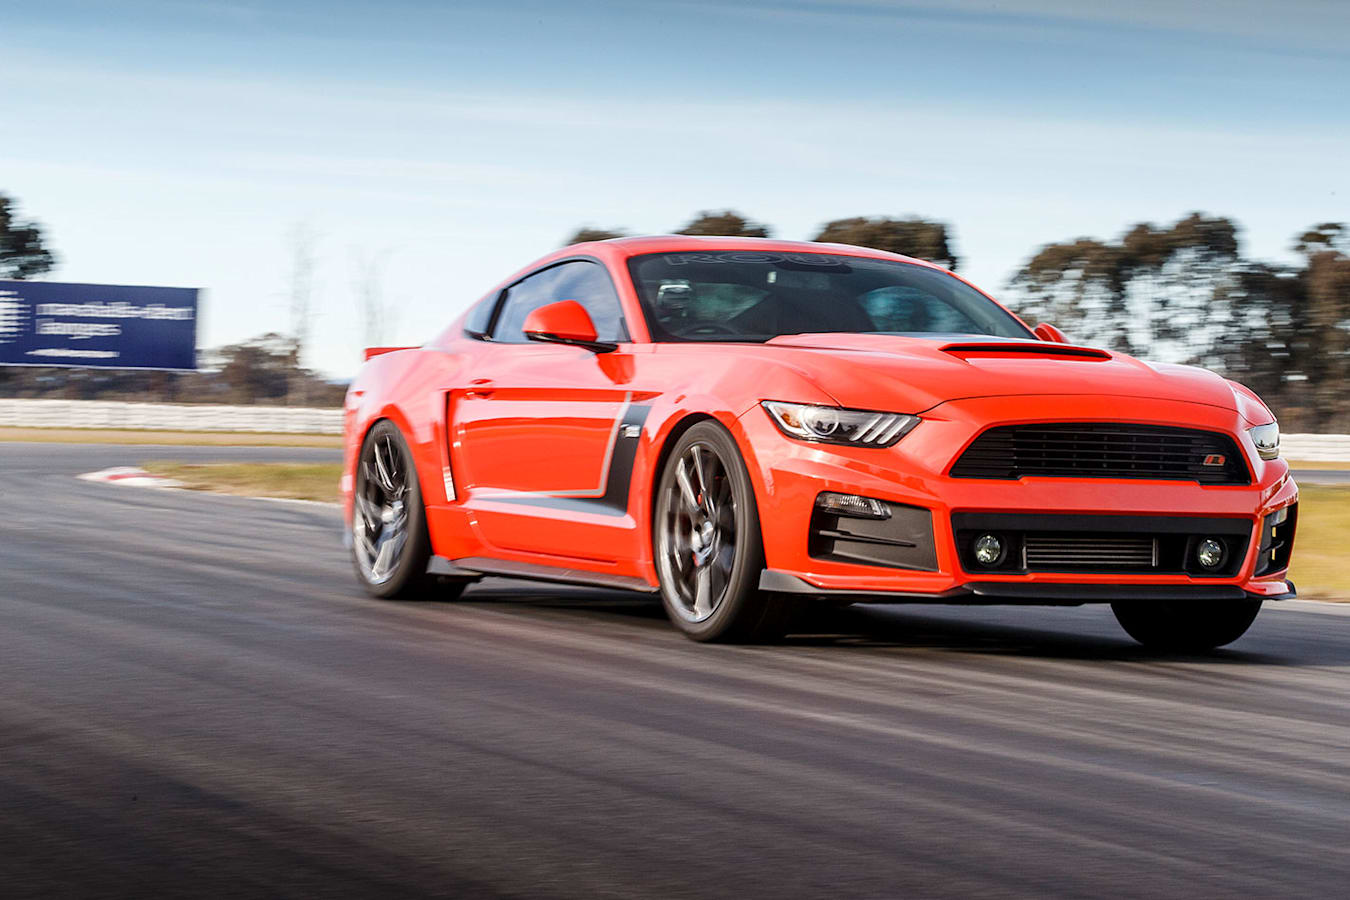 2017 Ford Mustang Mustang Motorsports Ecoboost Mm R 350 T Jpg